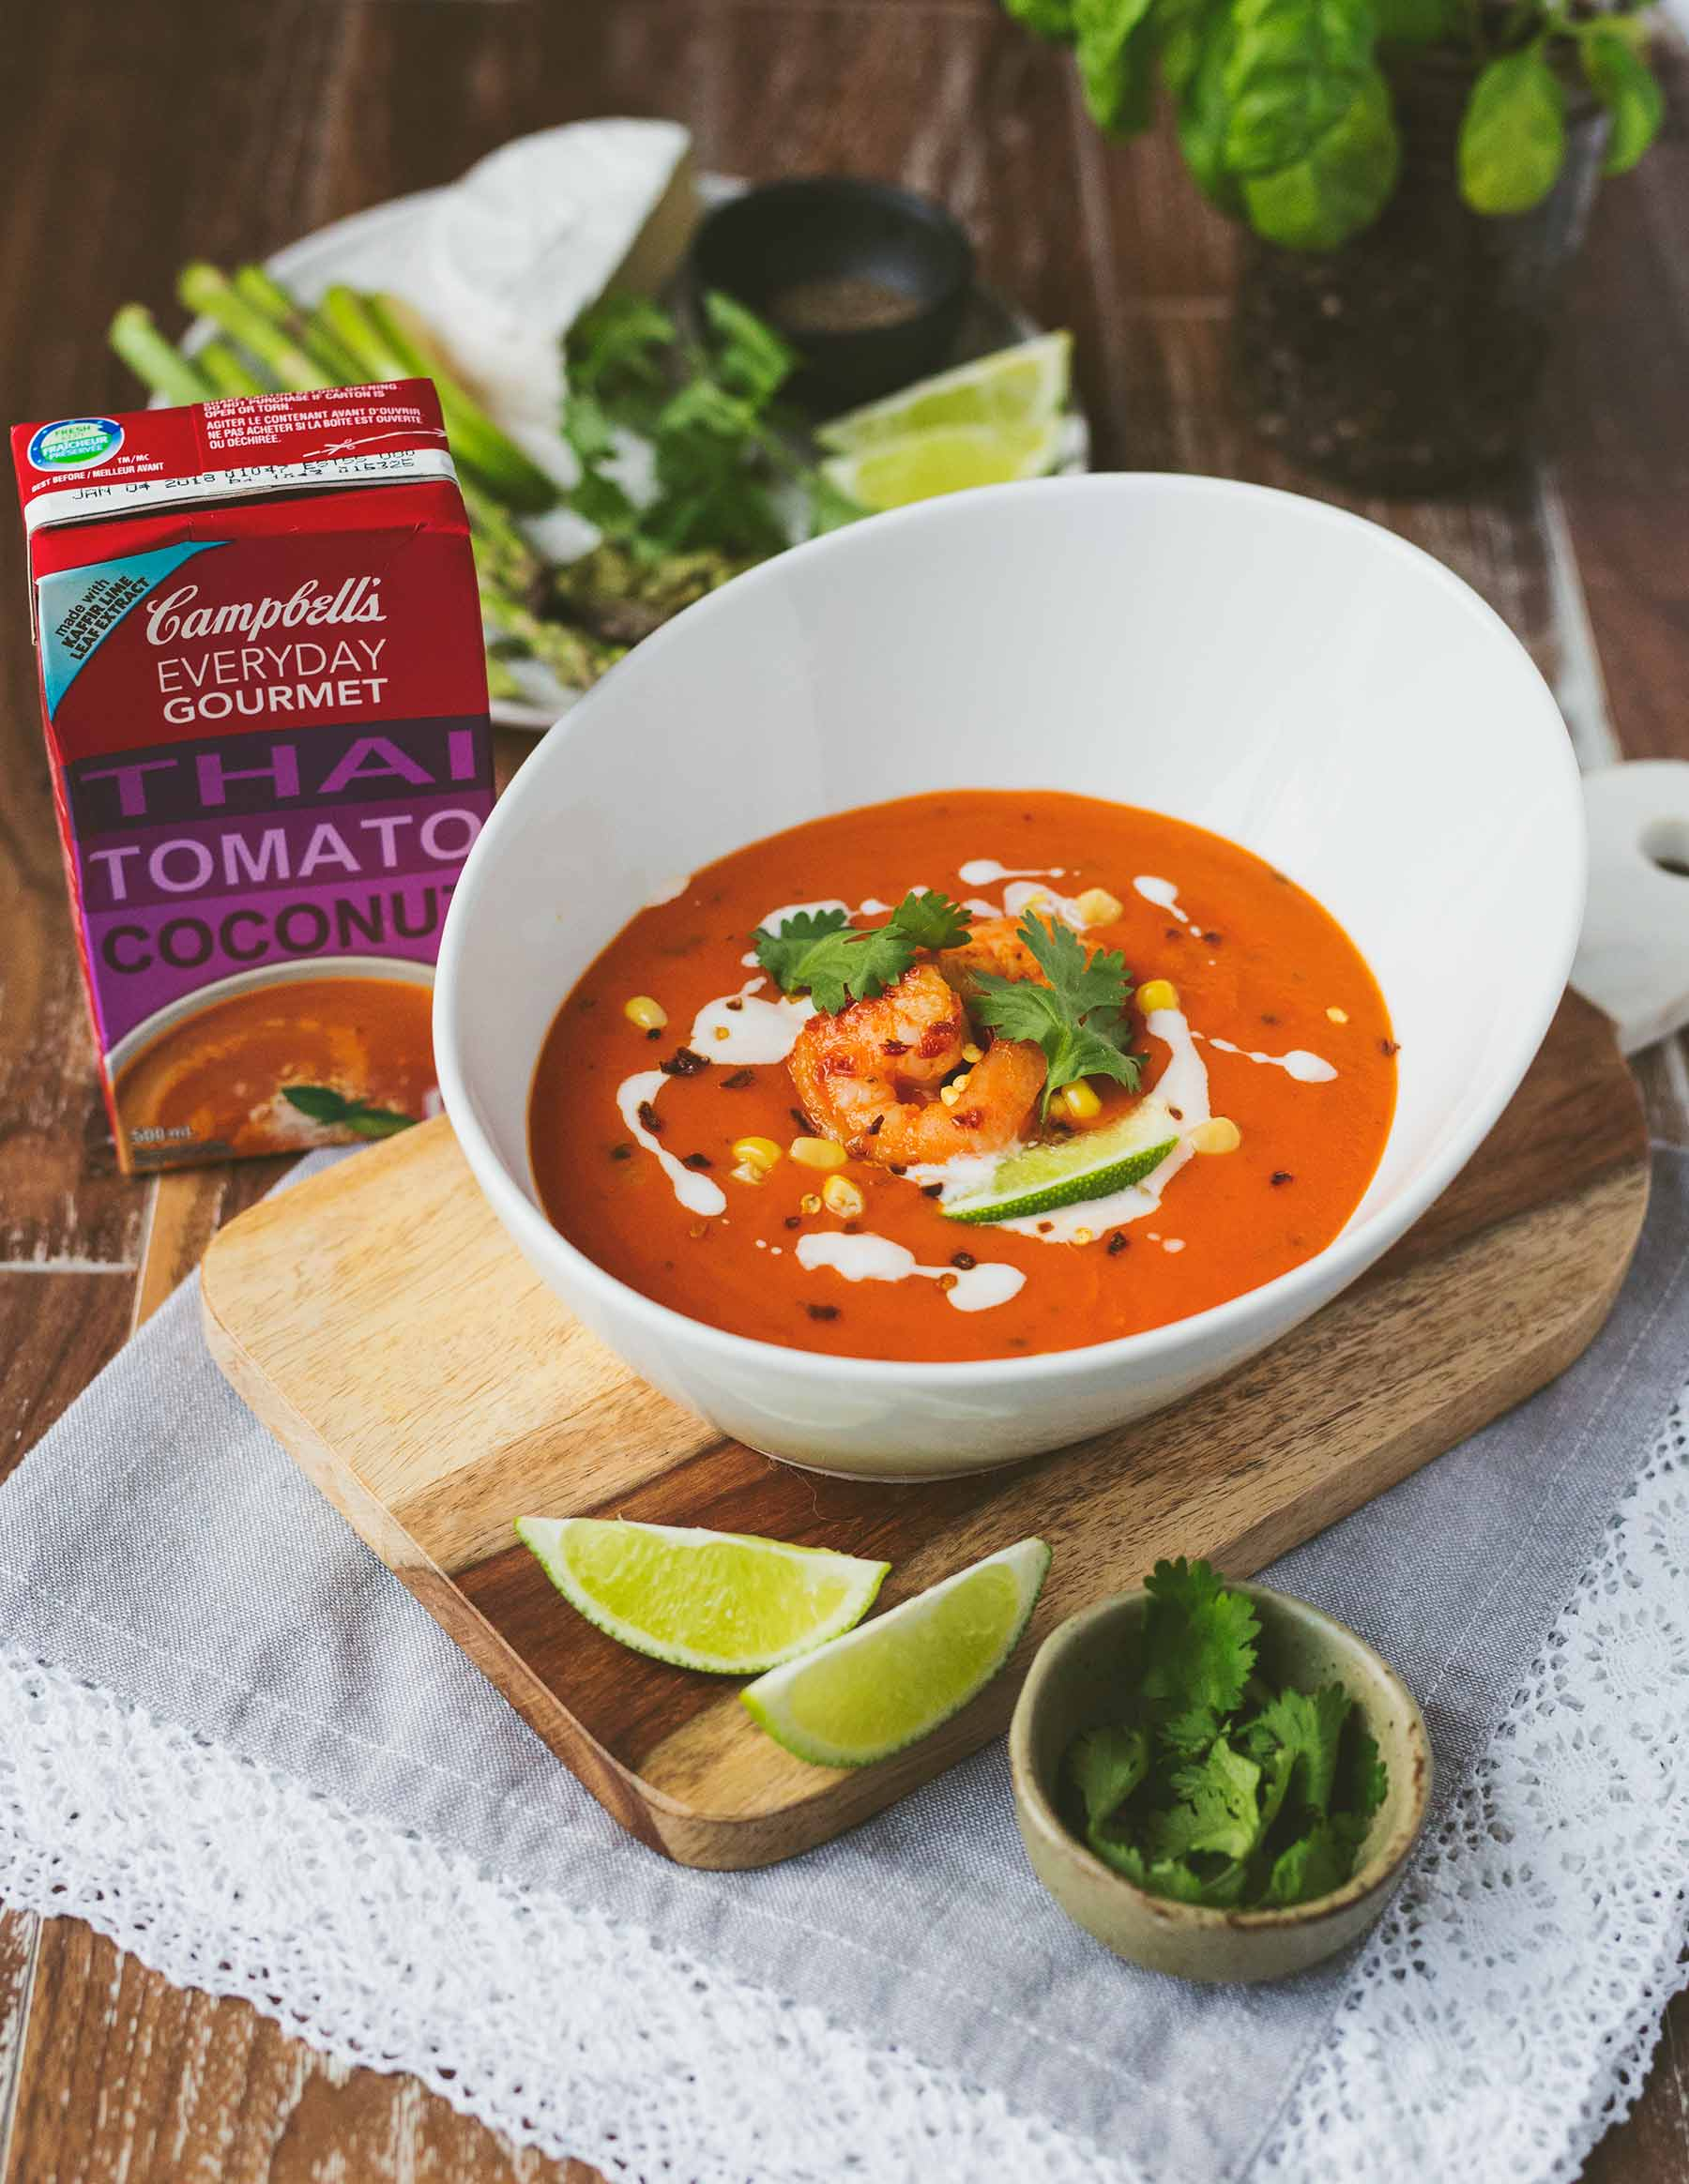 Campbell's Everyday Gourmet Thai Tomato Coconut